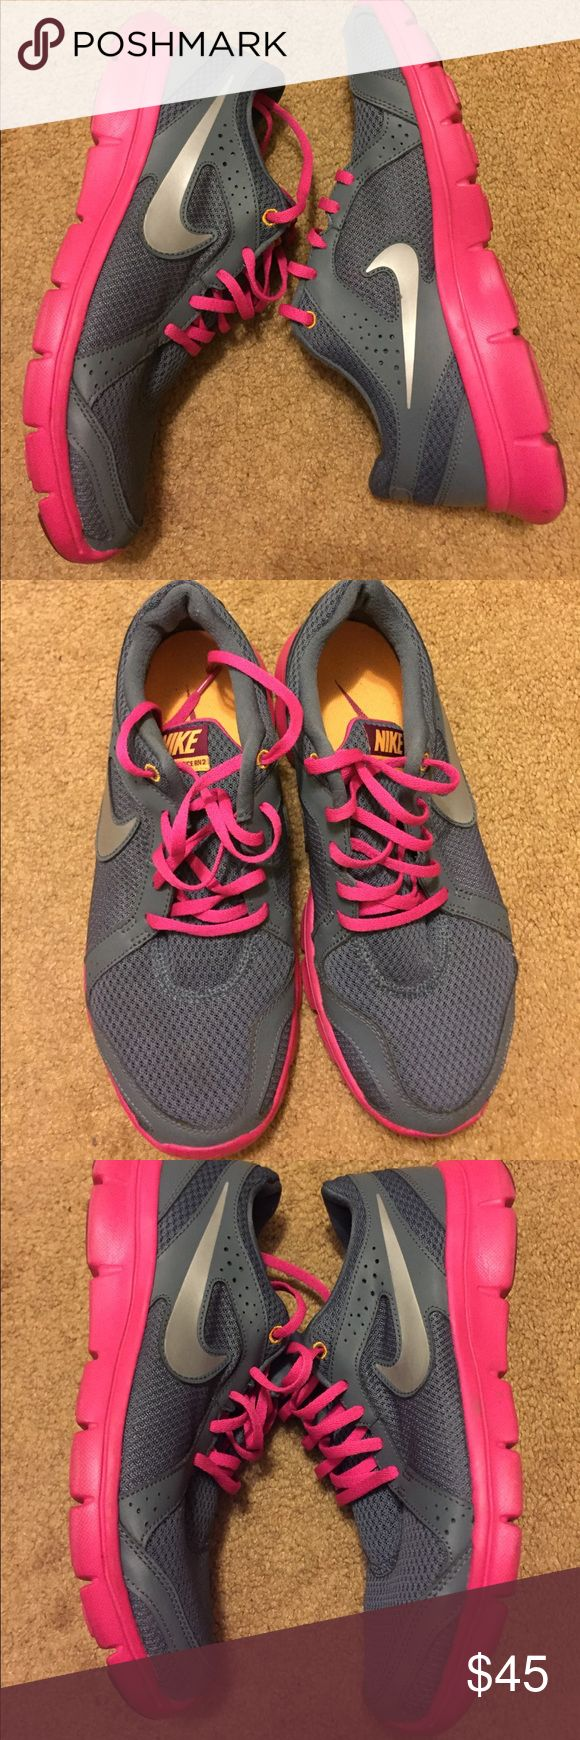 Fushia and Pink Nike Flex Experience RN2 sneakers Fushia and Pink Nike Flex Experience RN2 running sneakers. Worn once. clean and in excellent condition Nike Shoes Sneakers